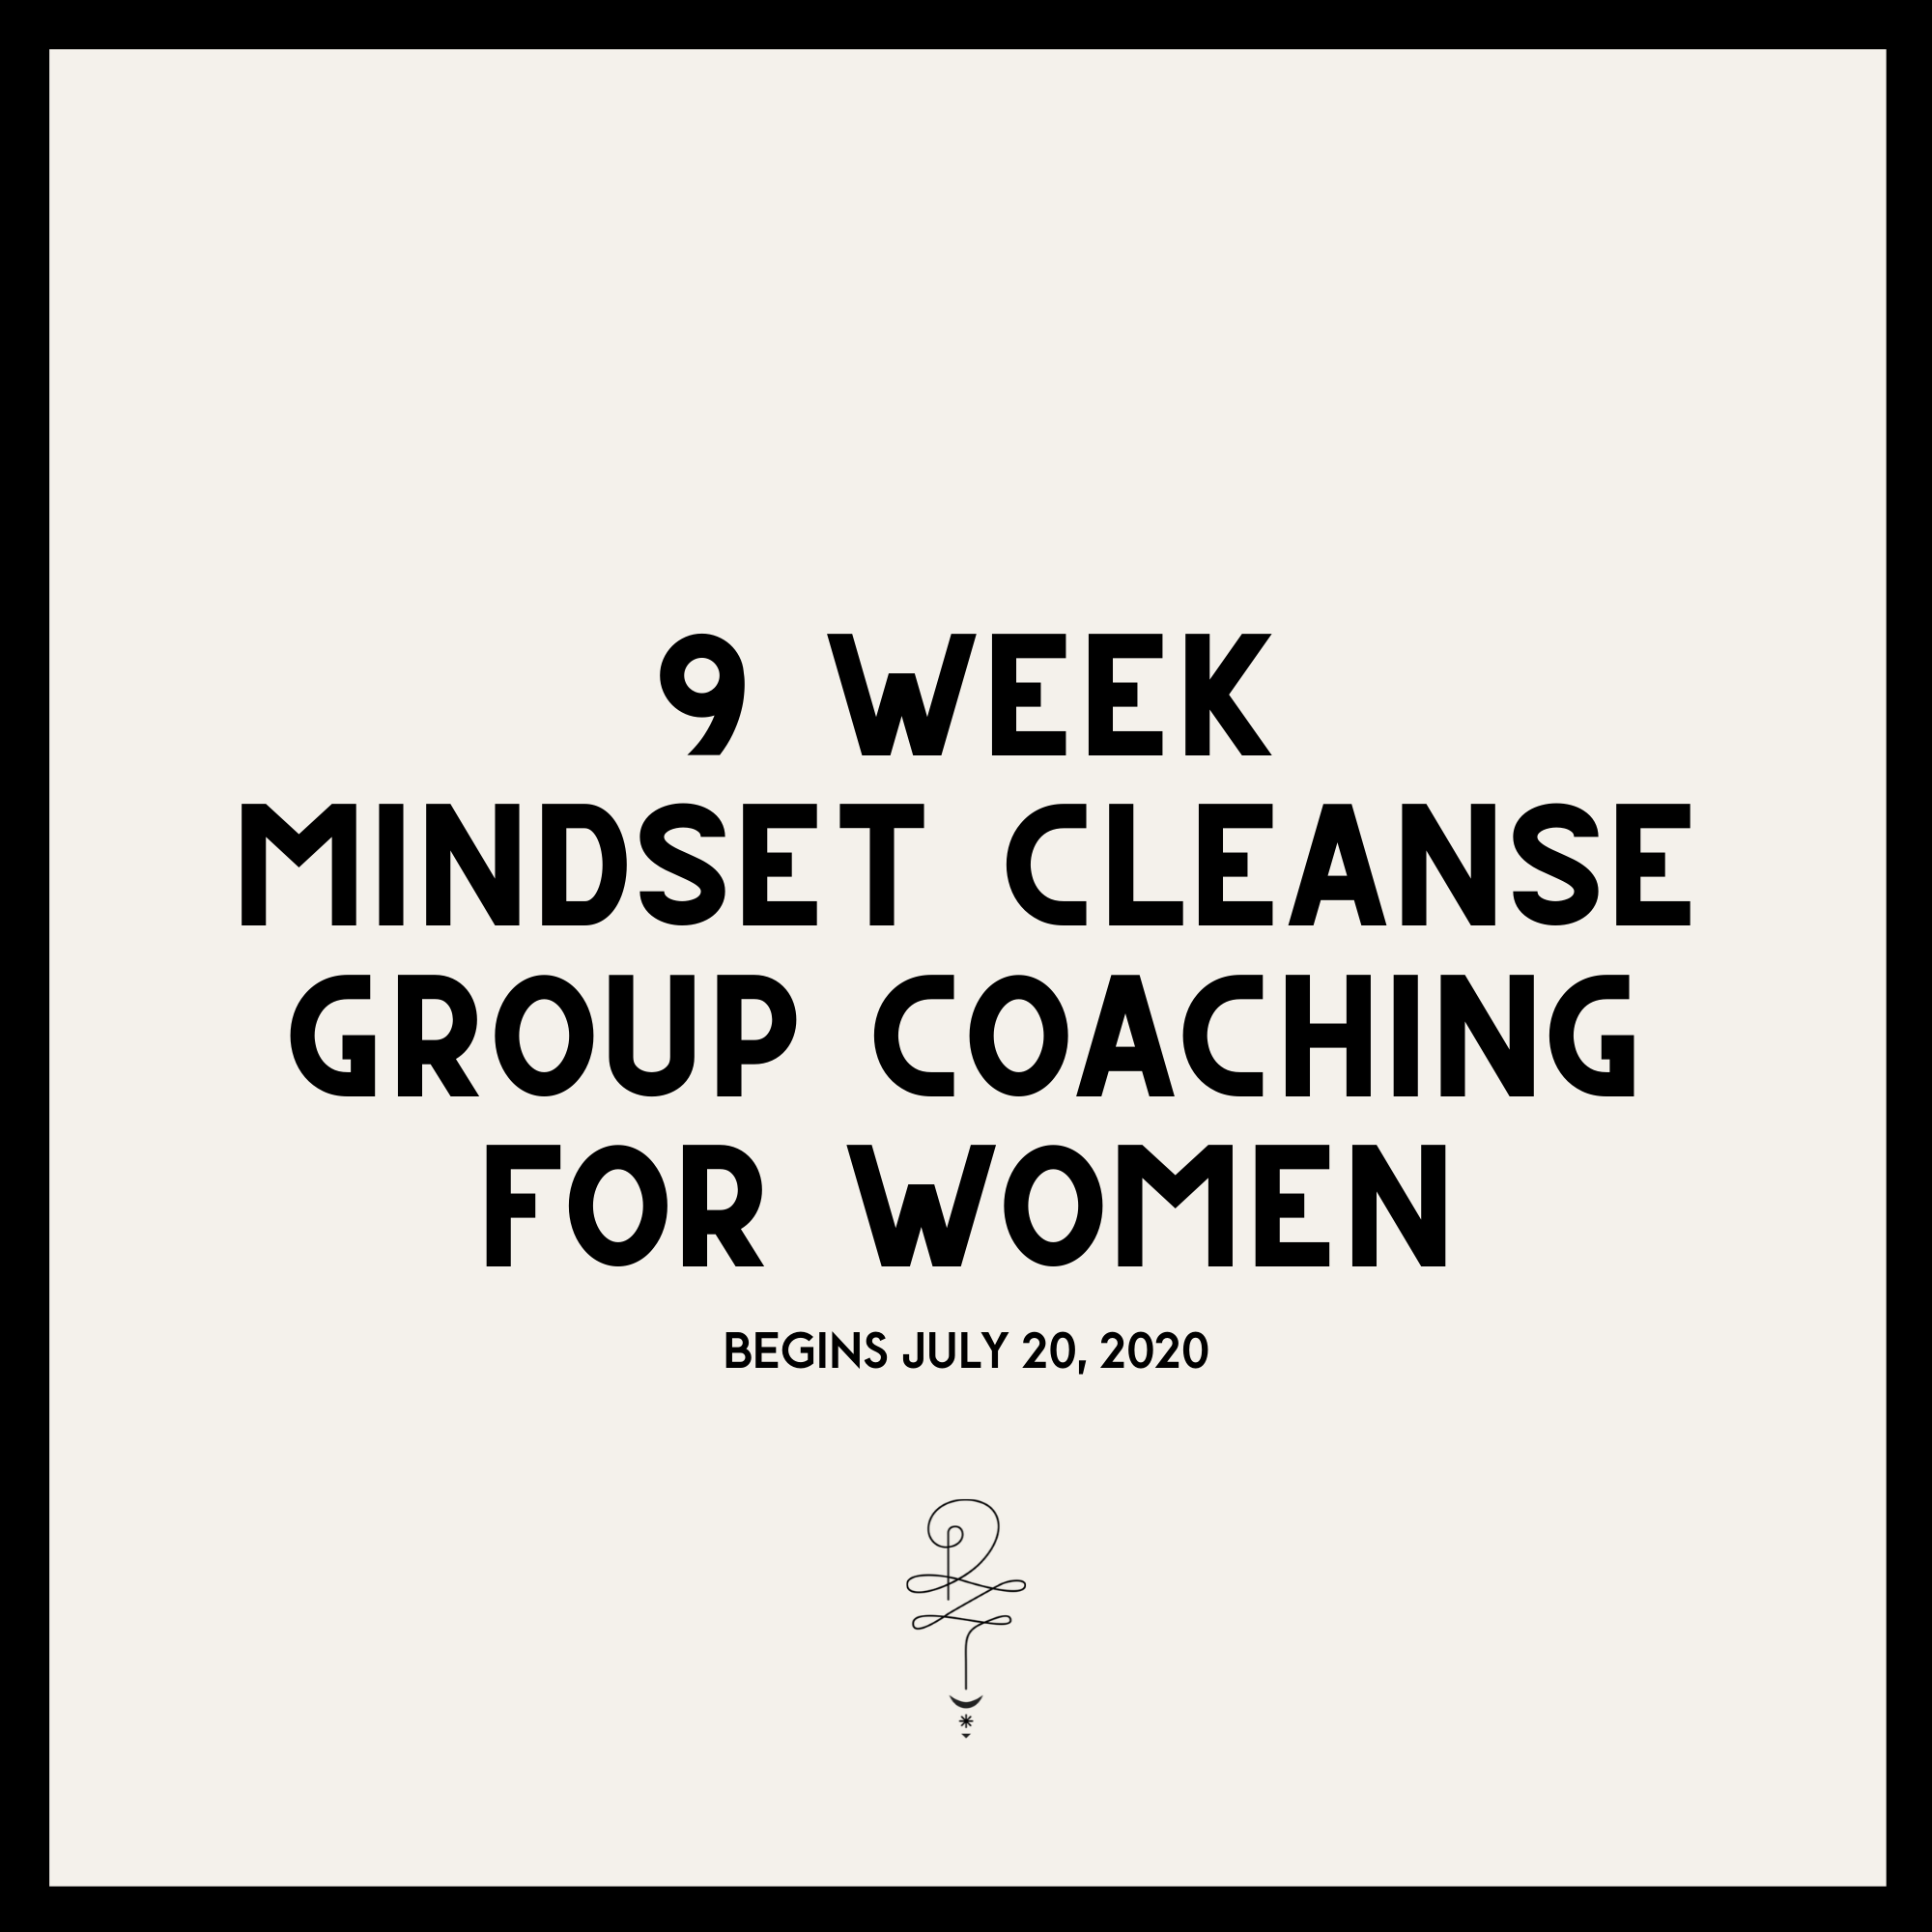 9 WEEK MINDSET CLEANSE | GROUP COACHING FOR WOMEN | BEGINS JULY 20, 2020